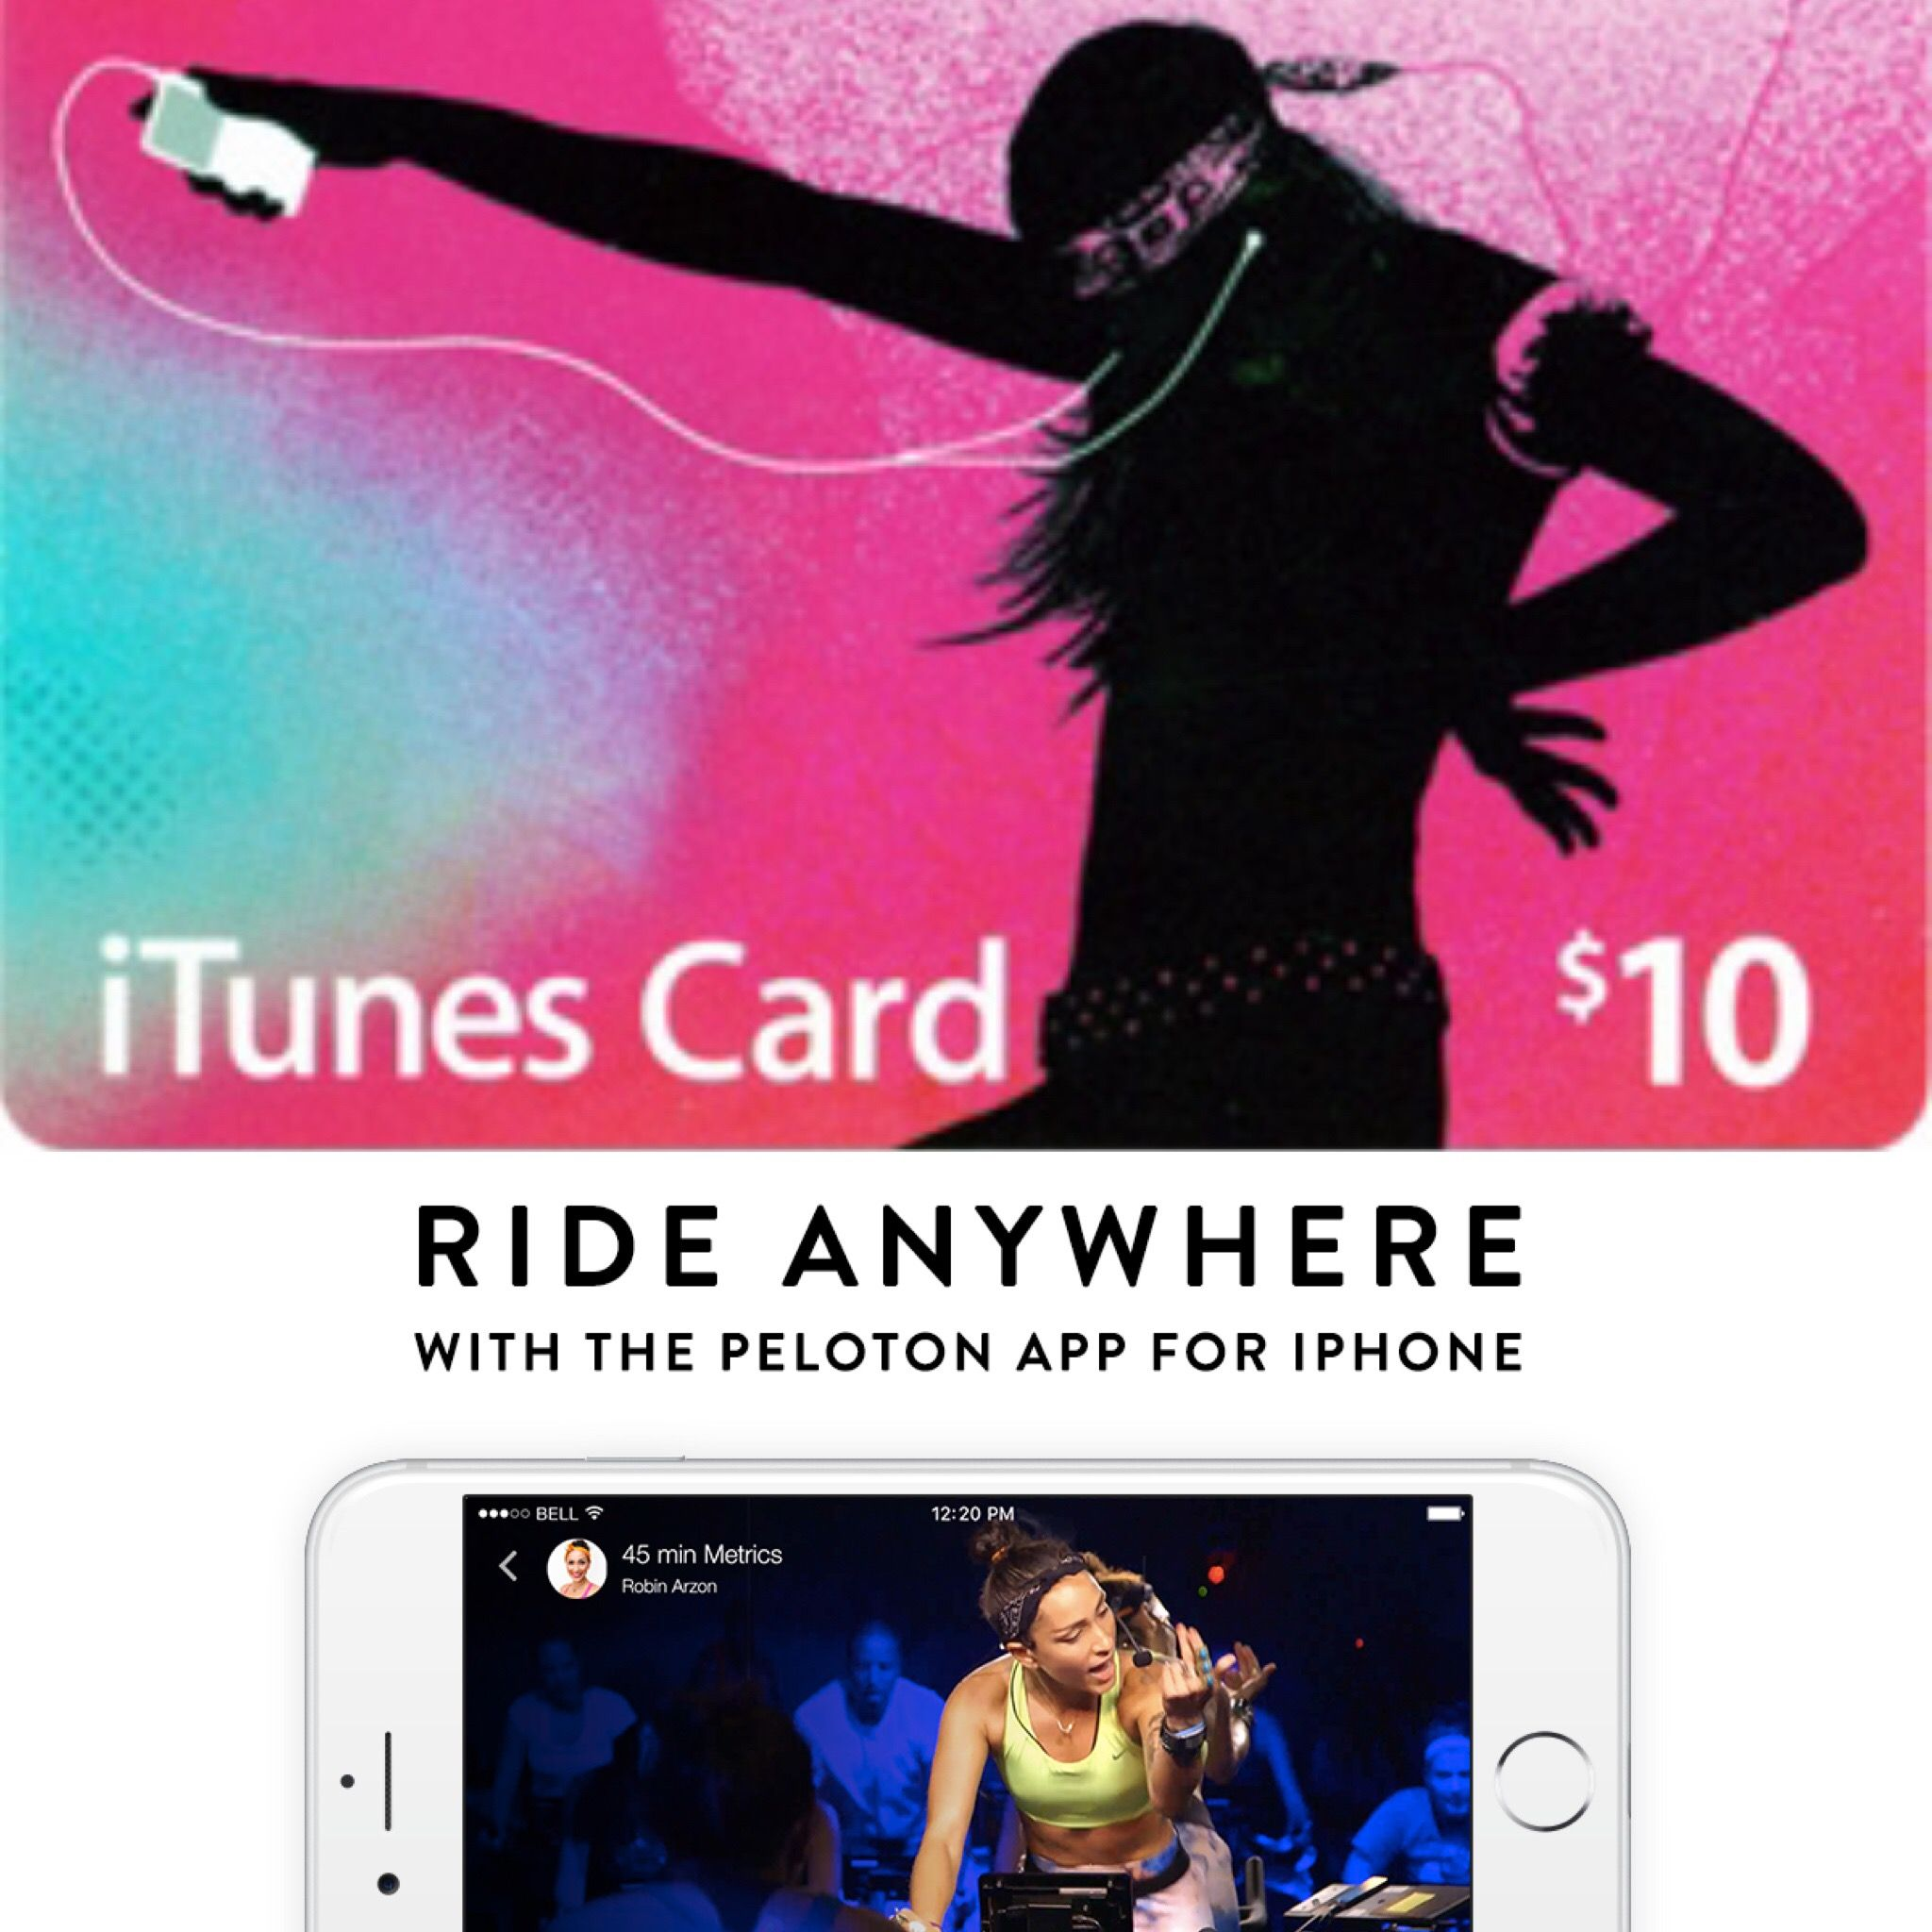 ITunes Gift Card To Pay For Online Cycling/fitness Classes